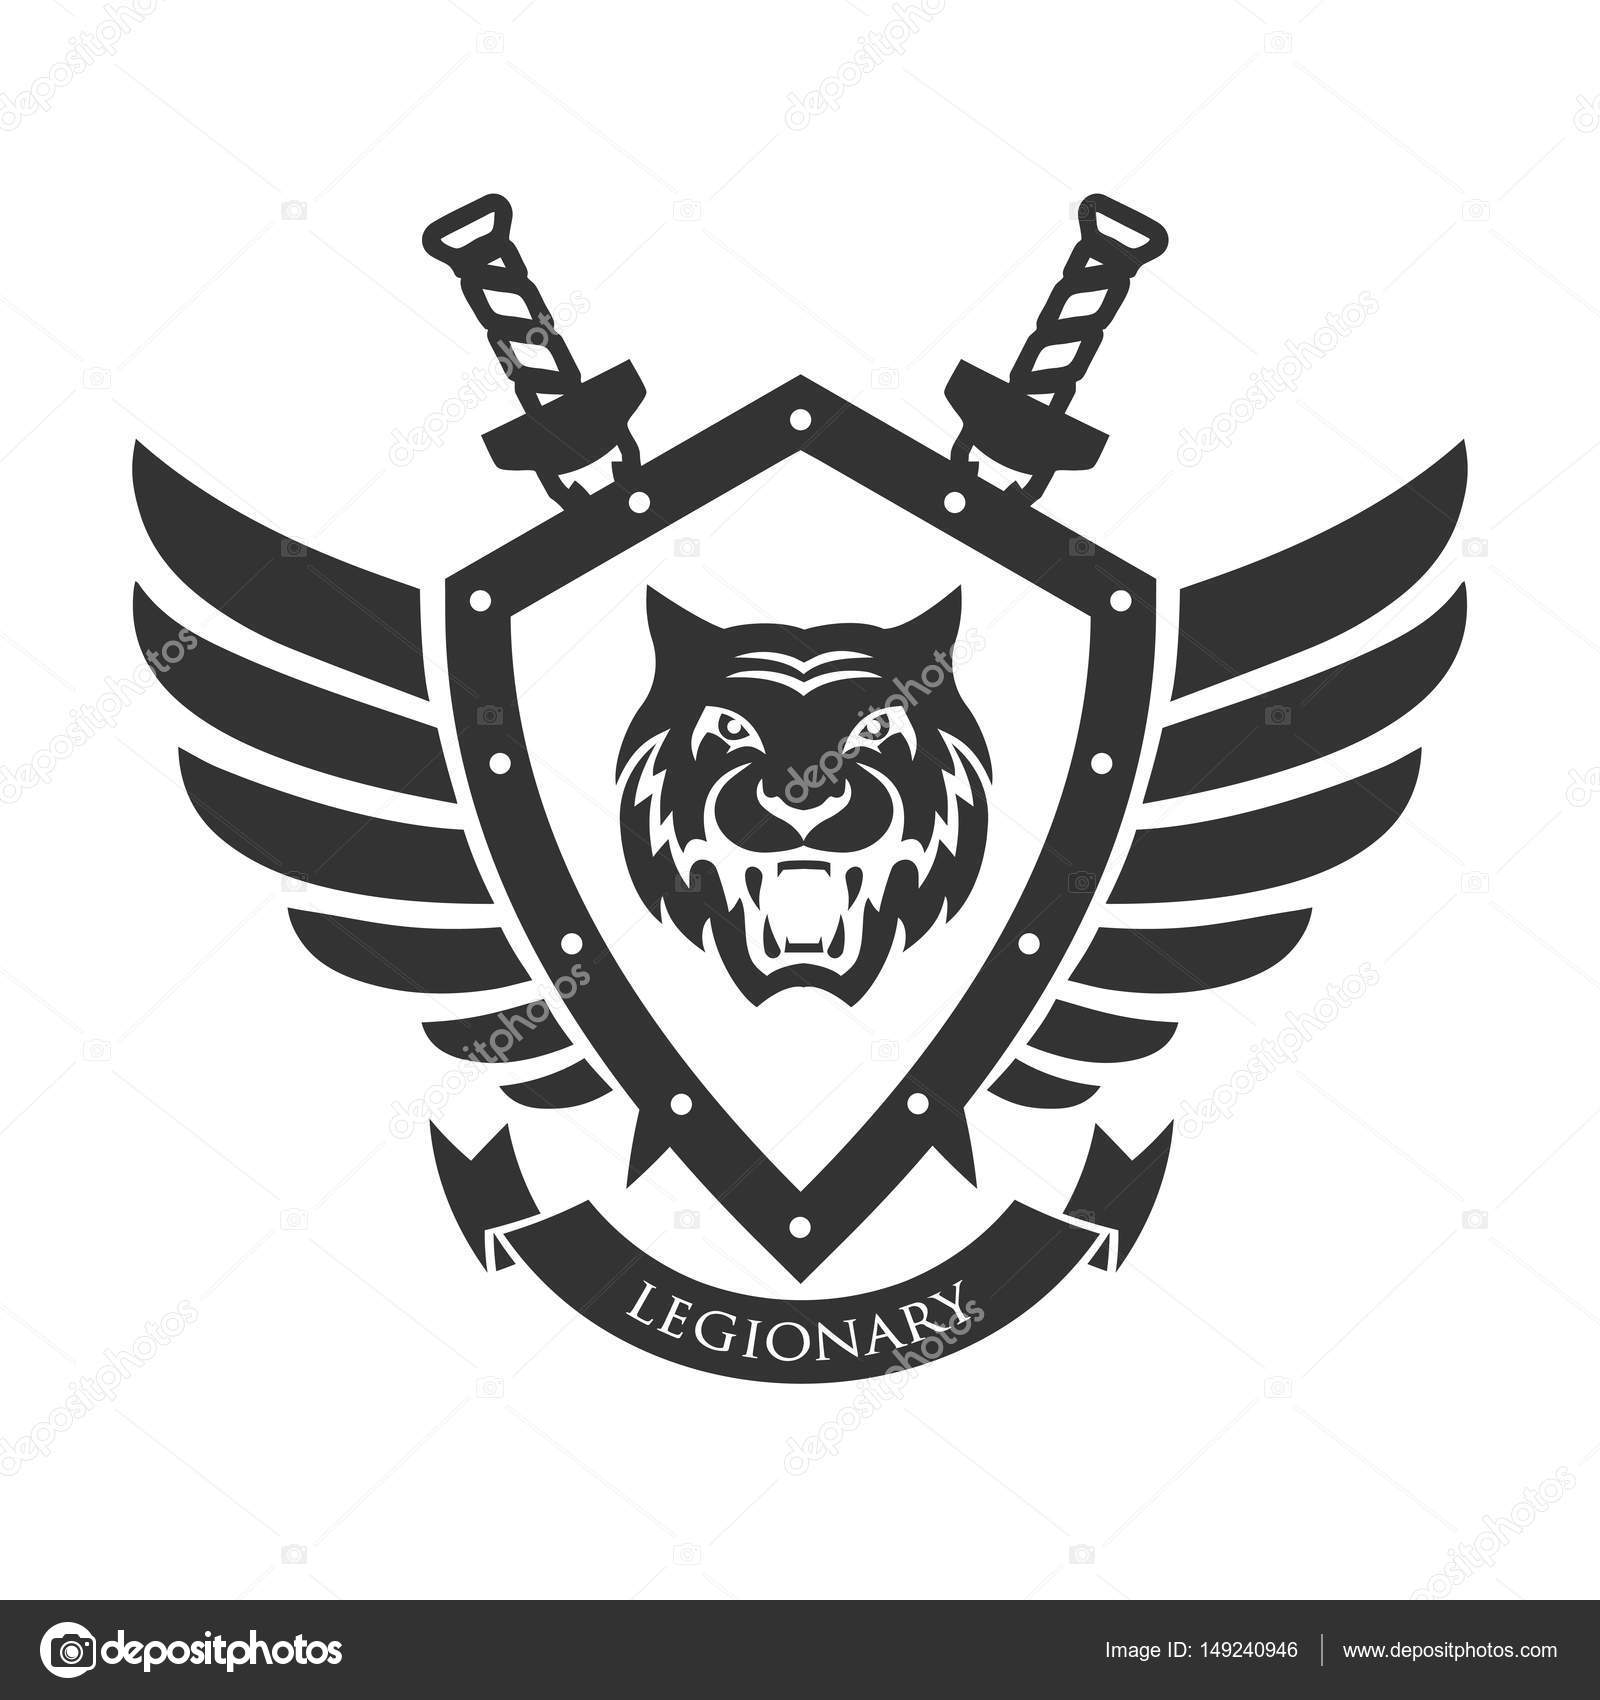 Military Symbol Legionarys Badge Stock Vector Matc 149240946